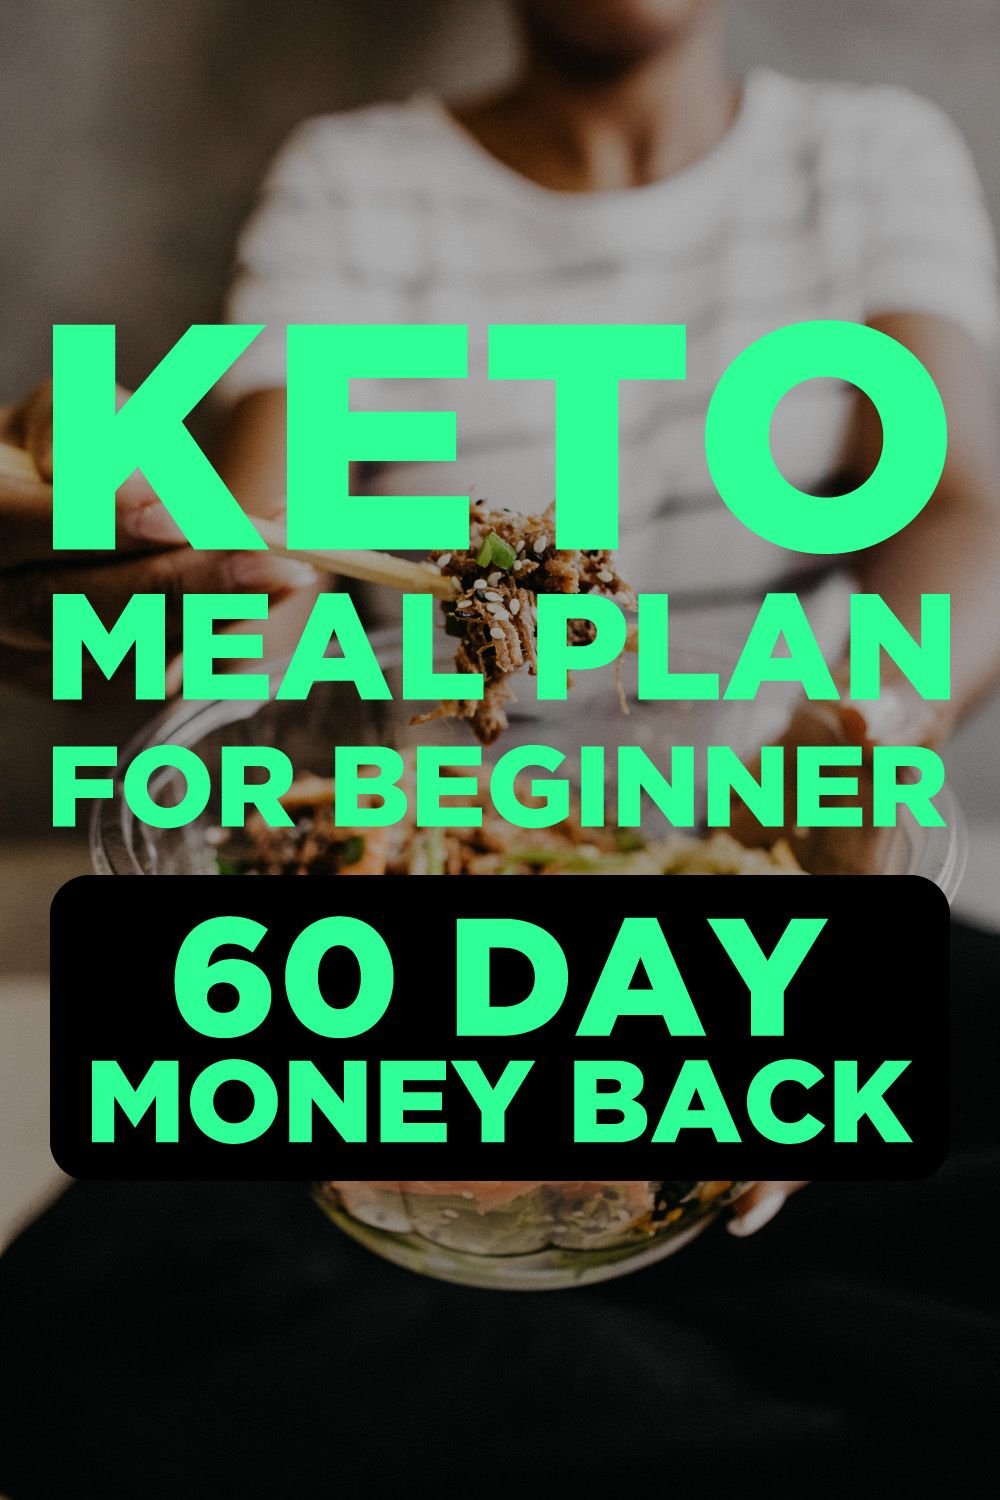 Keto Diet Recipes Flat Belly Diet Plan Keto Diet Pros And Cons Ketogenic Diet Dinner Recipes Flat Belly Diet Plan Flat Belly Diet Diet Dinner Recipes